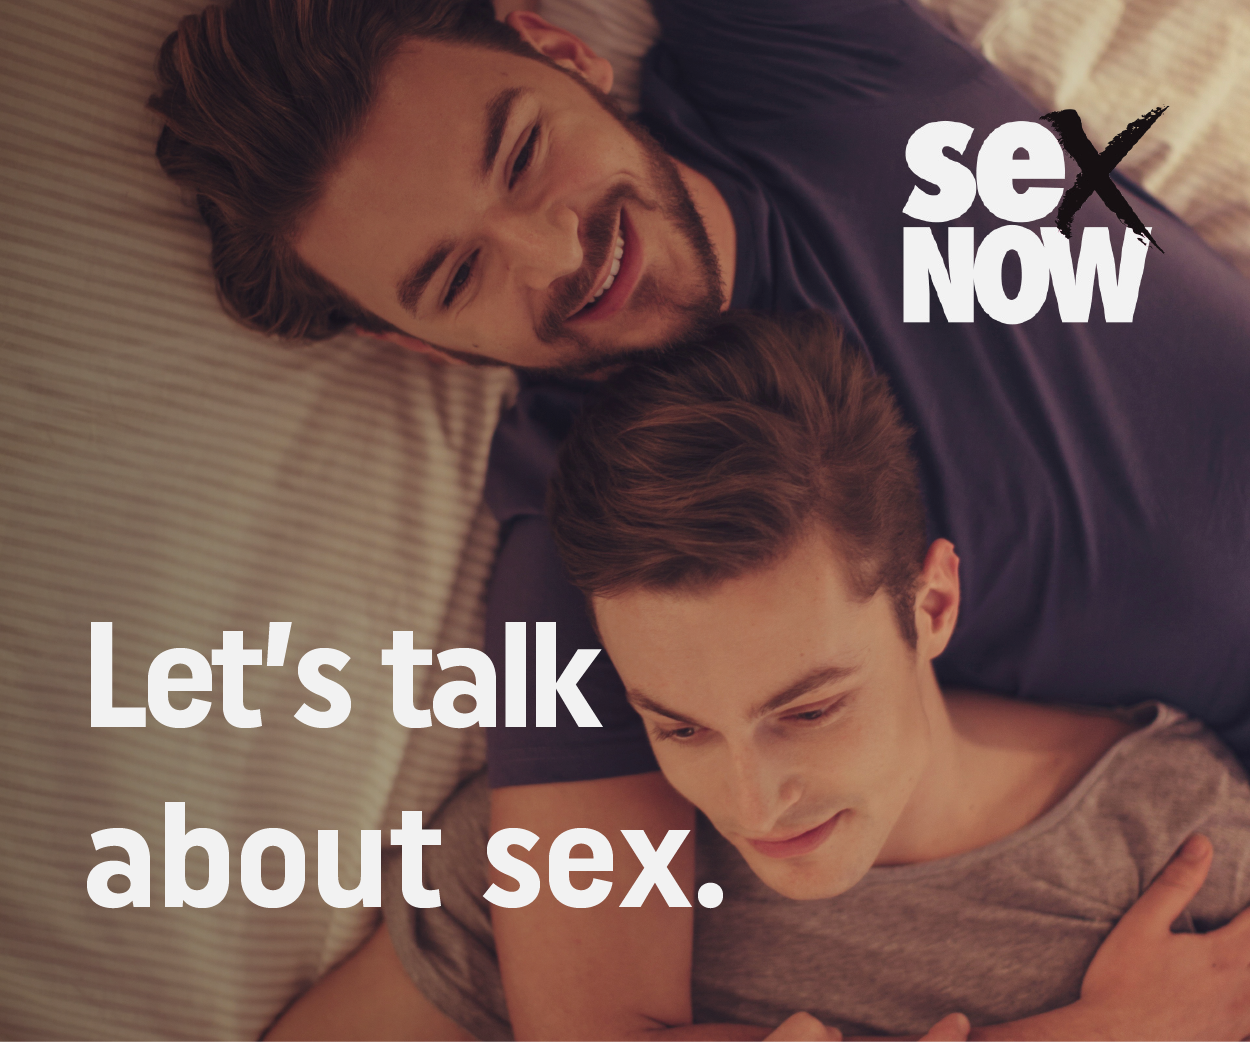 SexNow_TalkAboutSex-01.png